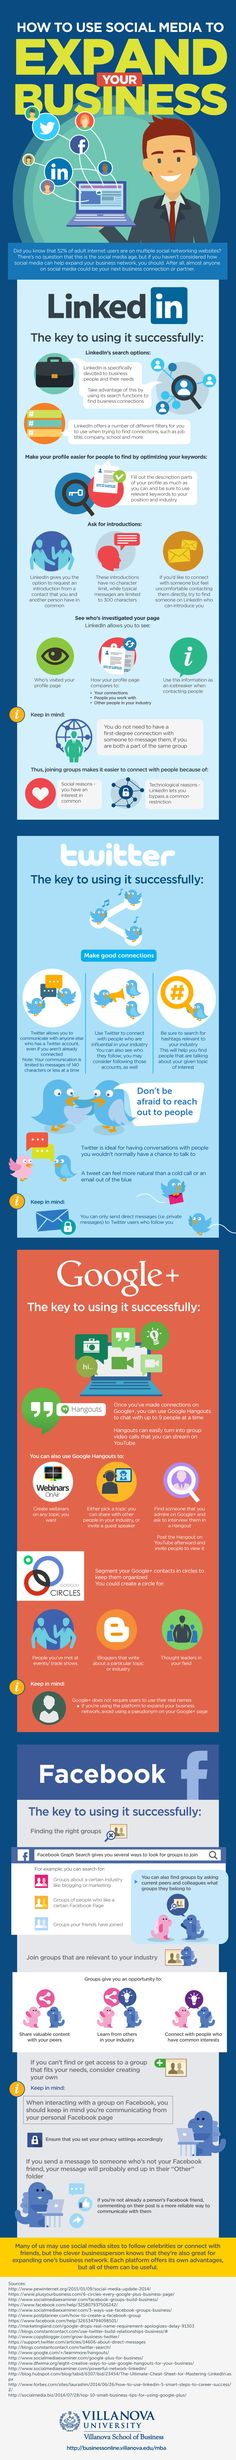 LinkedIn, Twitter, Google+, Facebook: How to Use #SocialMedia to Expand Your Business - #infographic